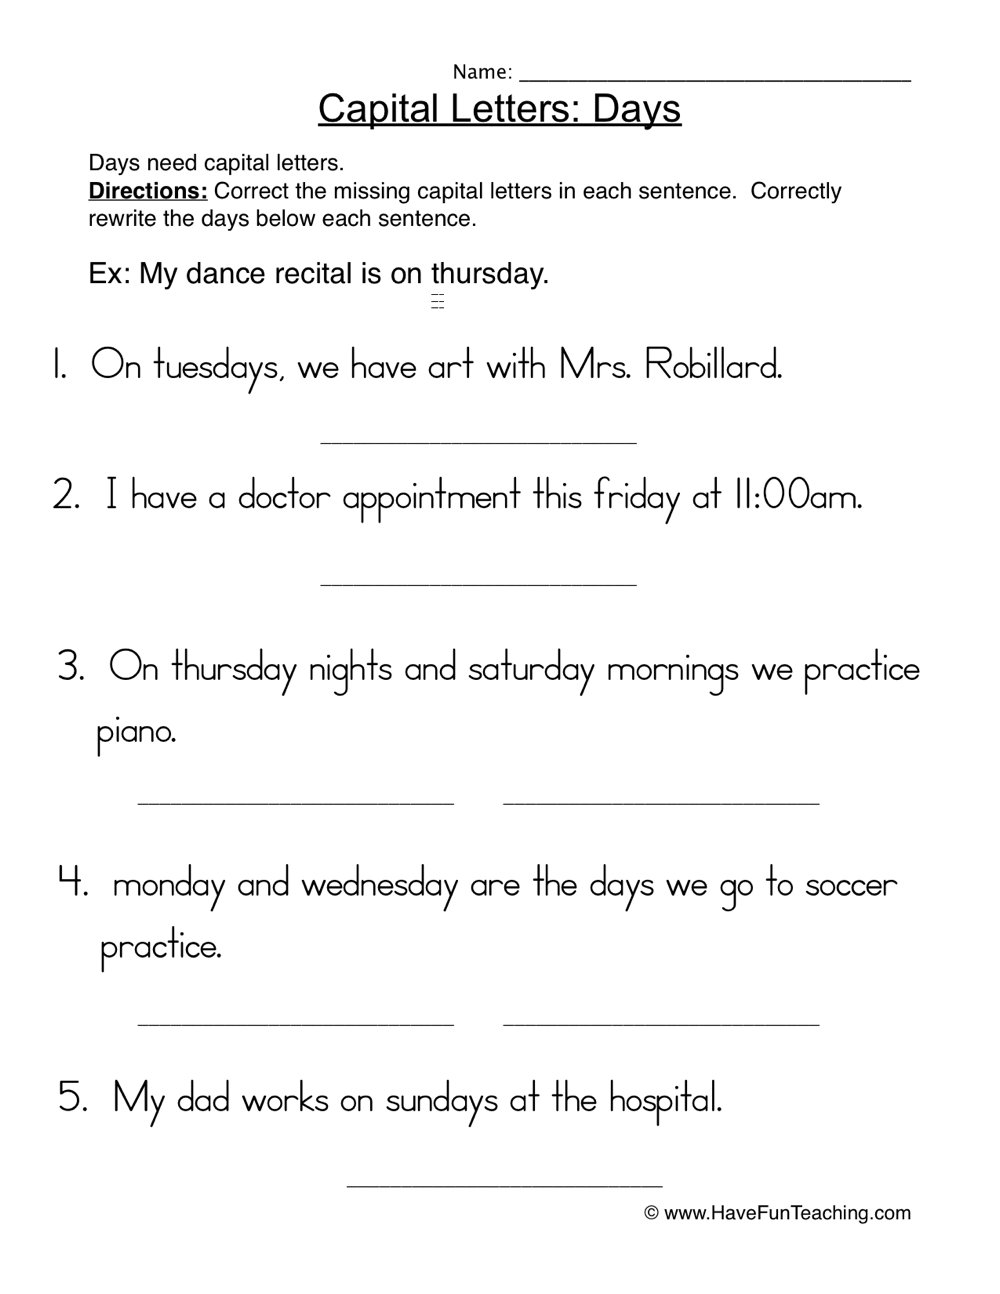 Capital Letter Beginning Sentence.Capital Letters Days Sentences Worksheet Have Fun Teaching